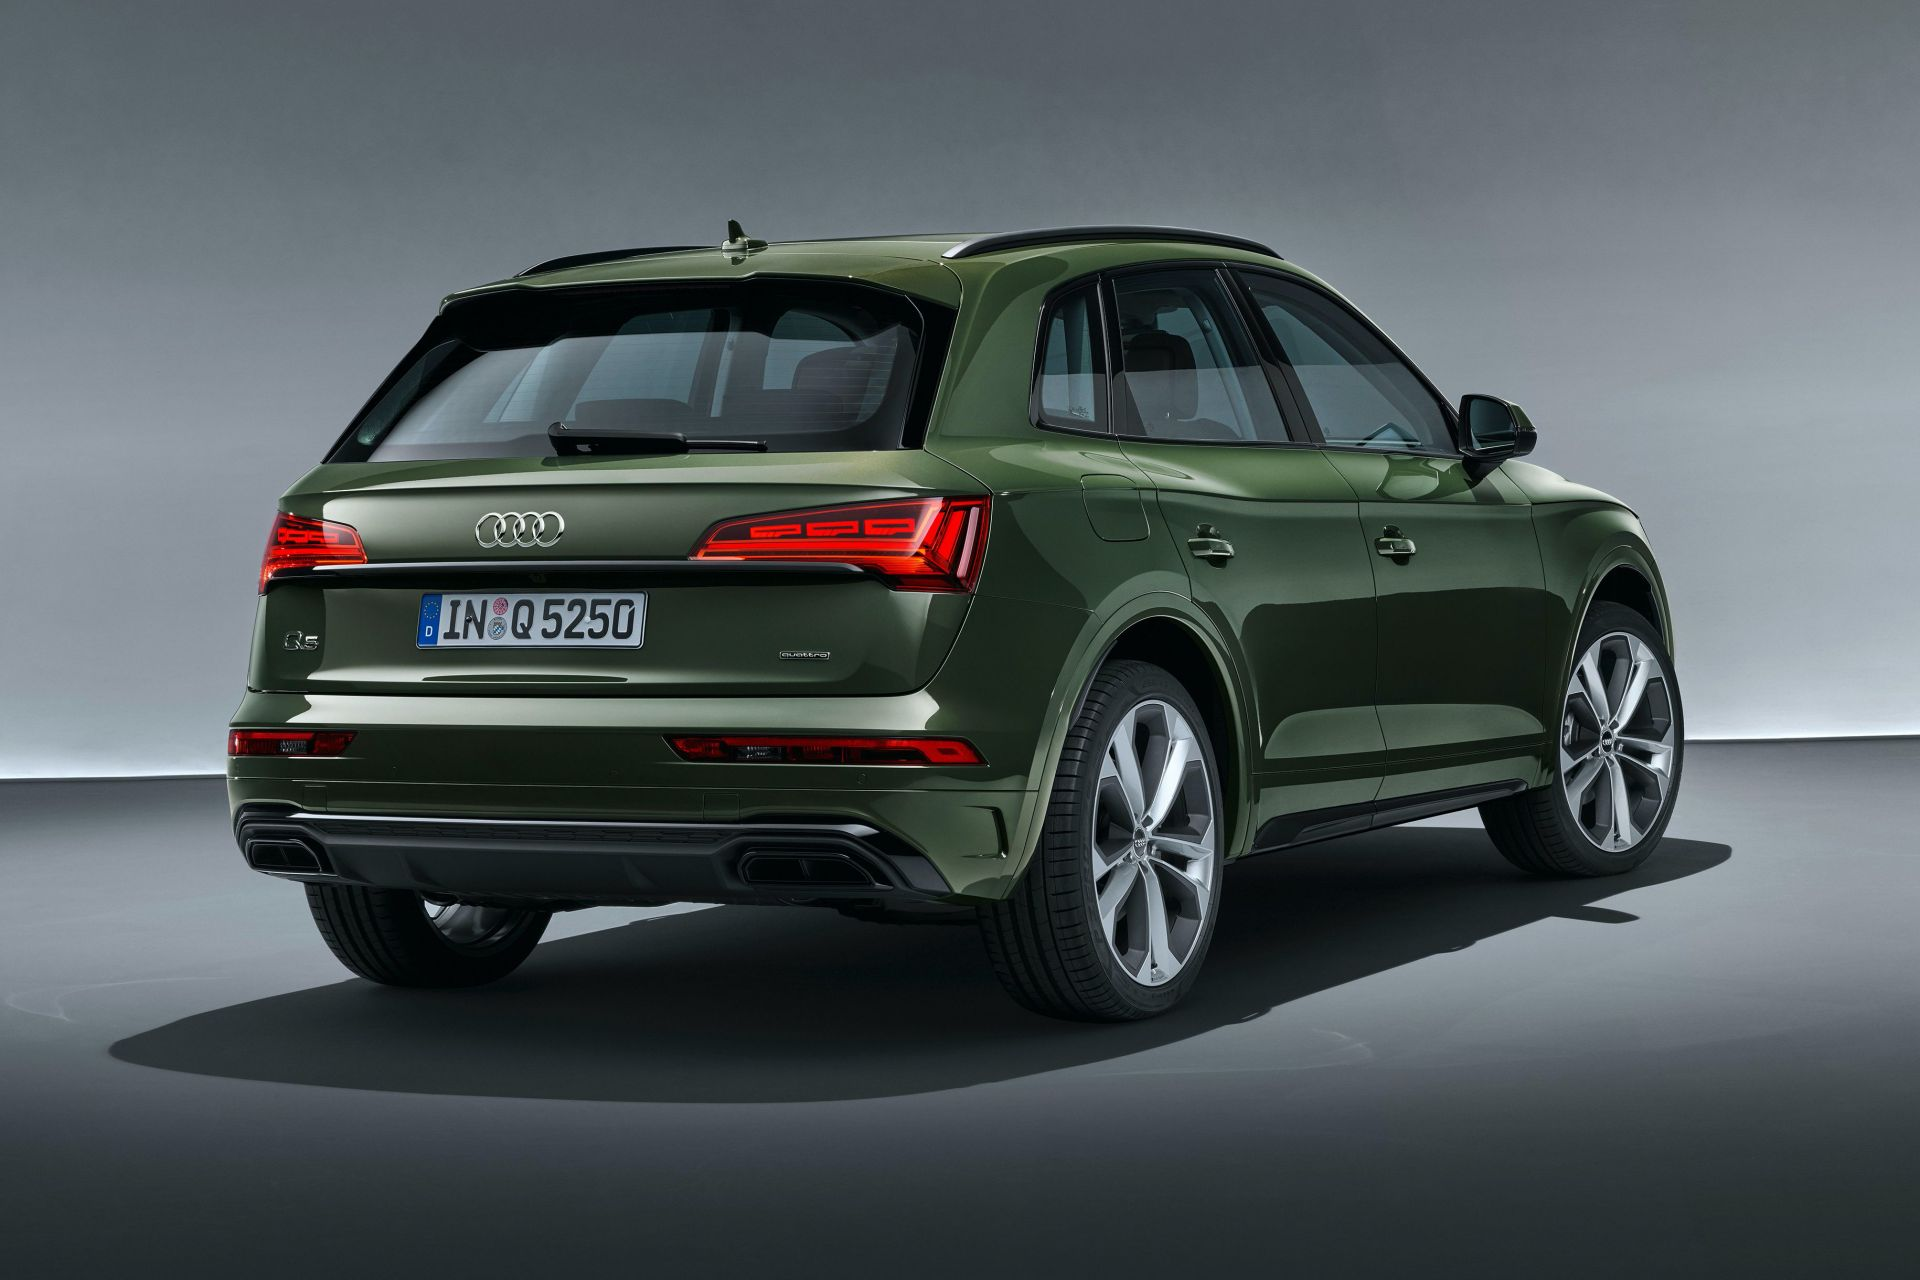 2021 Audi Q5 Facelift Breaks Cover With Sharper Design ...